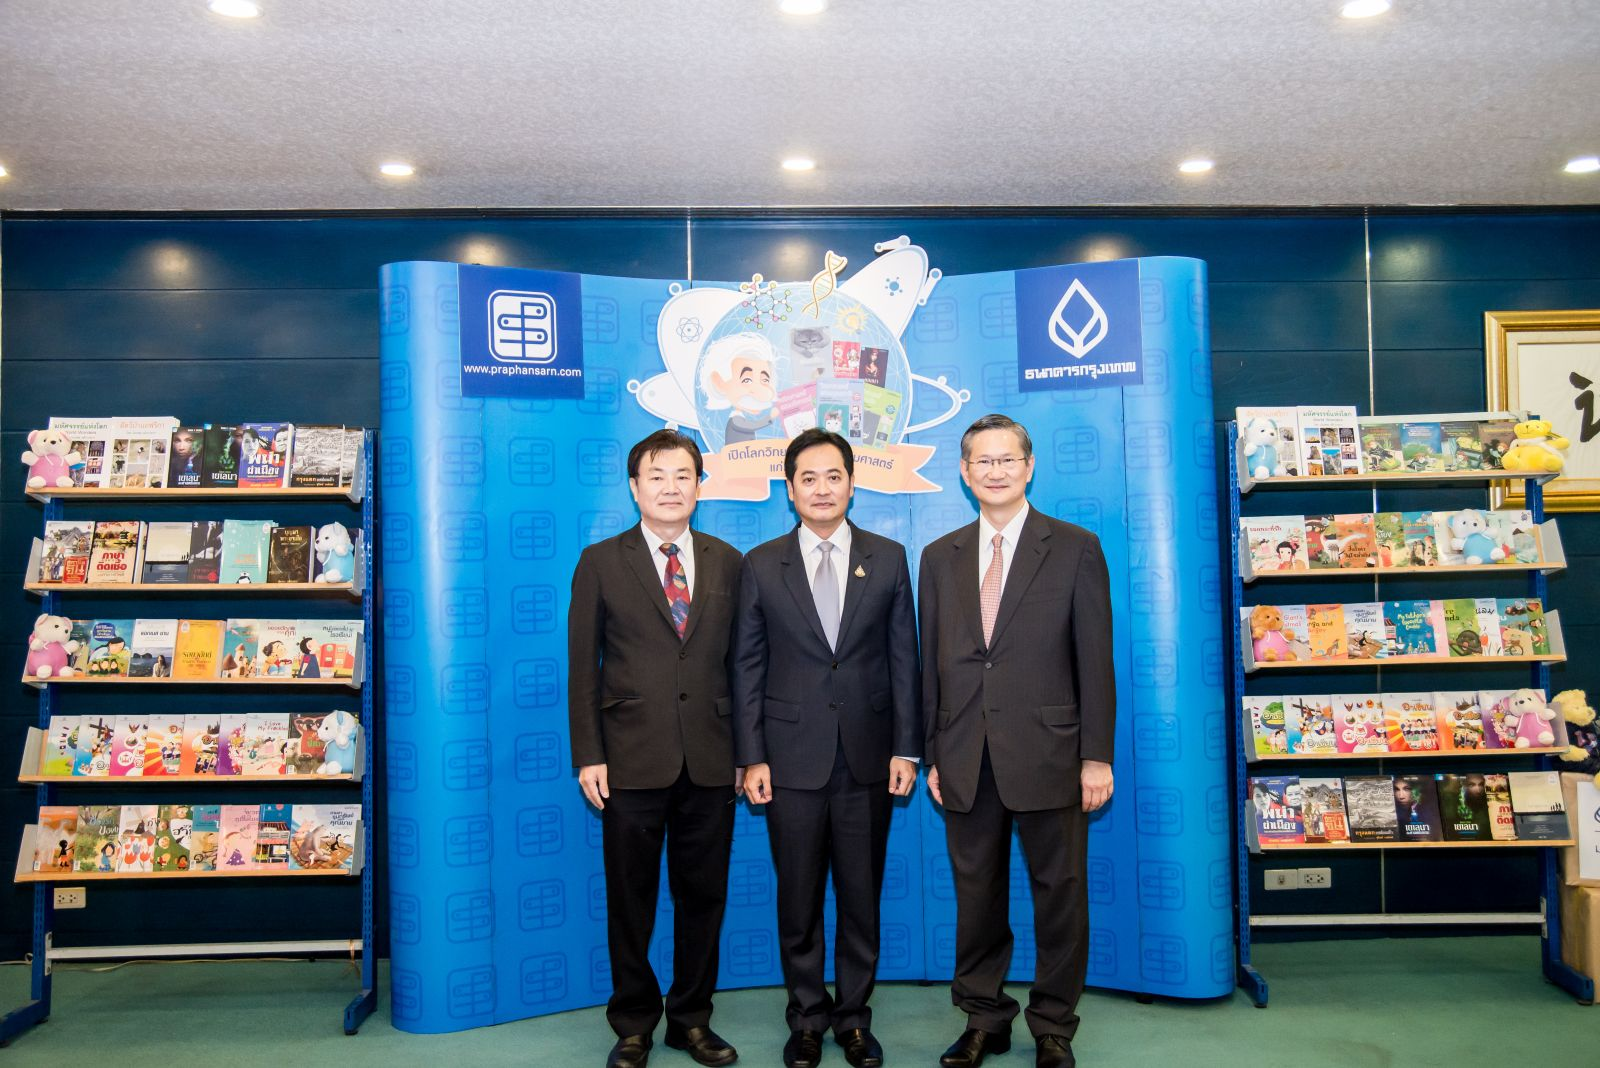 Bangkok Bank Donates 8 Million Books to 400 Thai Schools Nationwide